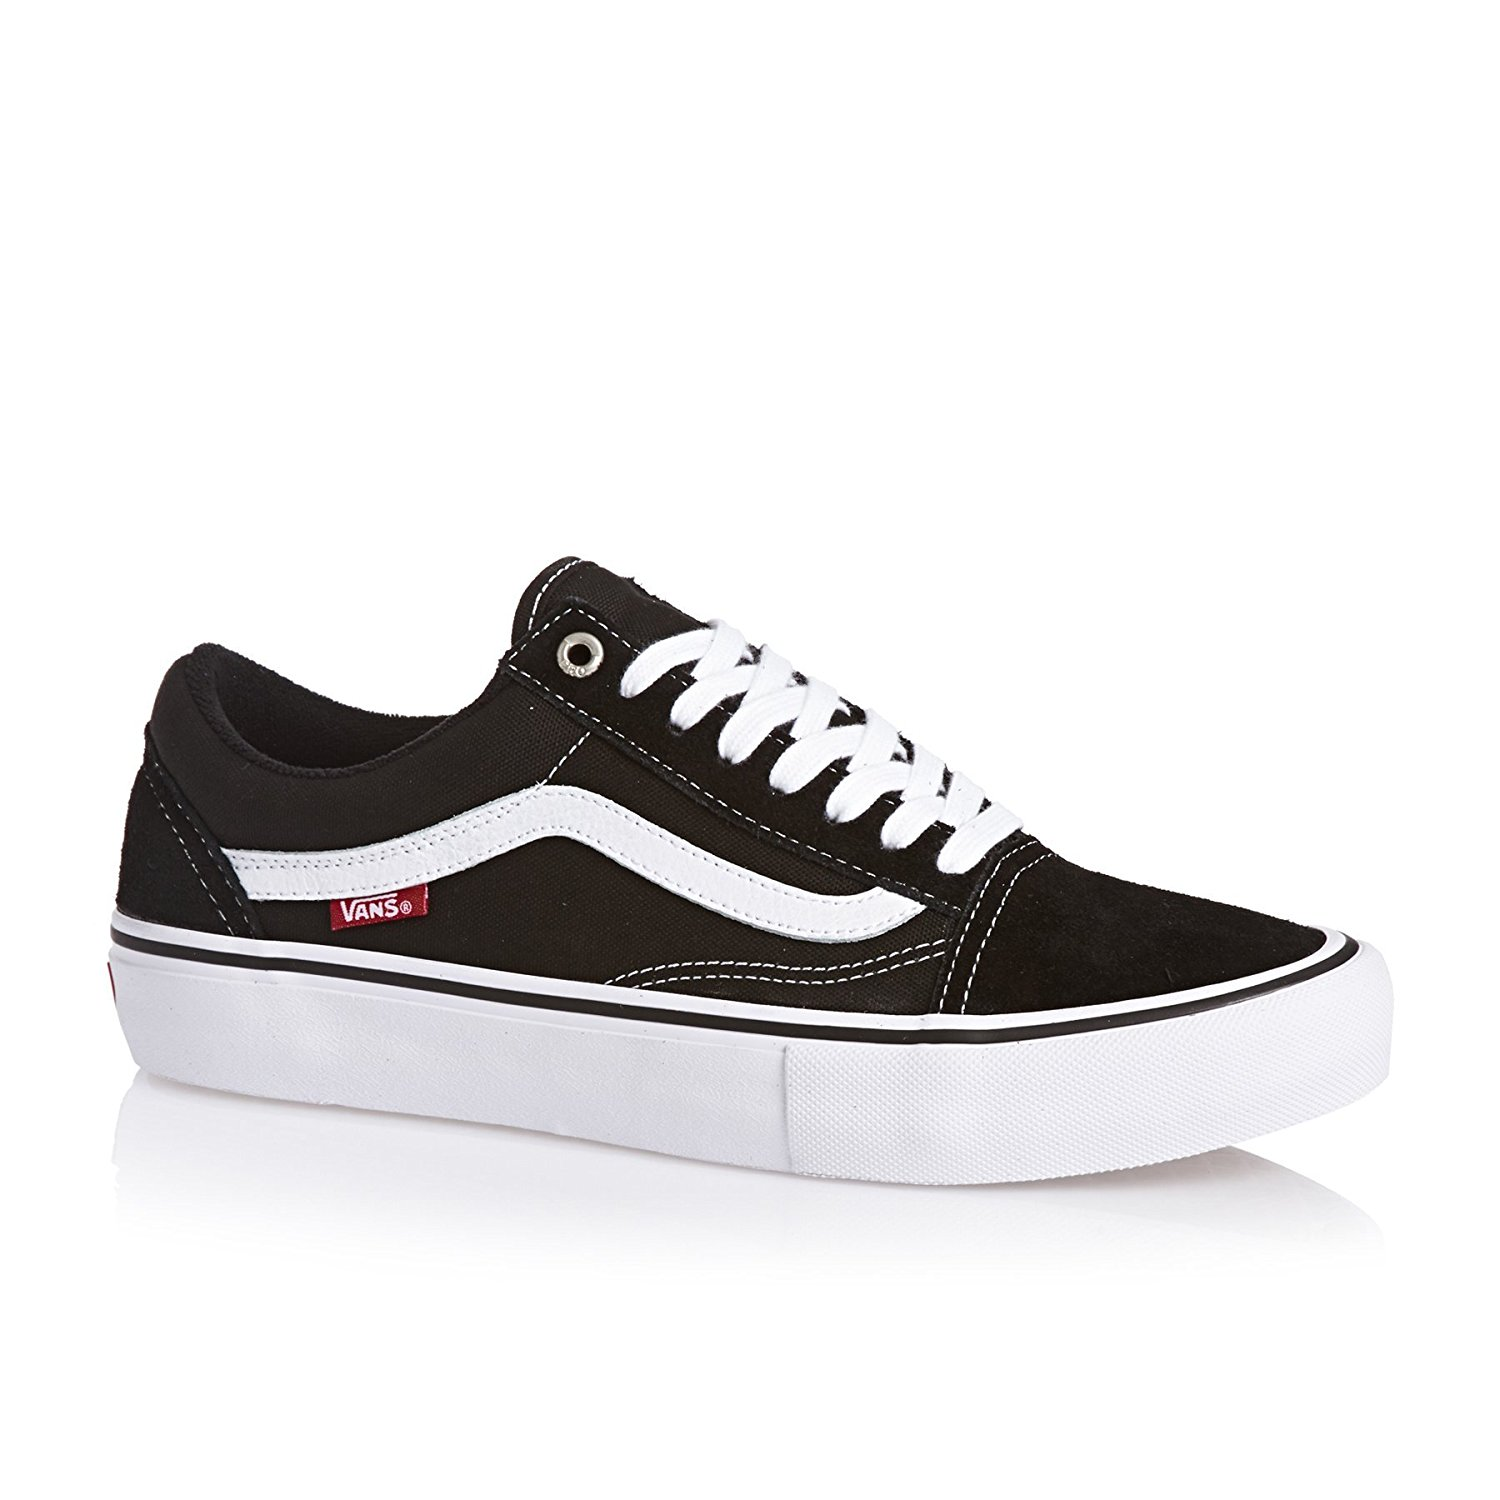 08c2afe629787 Amazon.com | Vans Men's Old Skool Skate Shoe | Fashion Sneakers